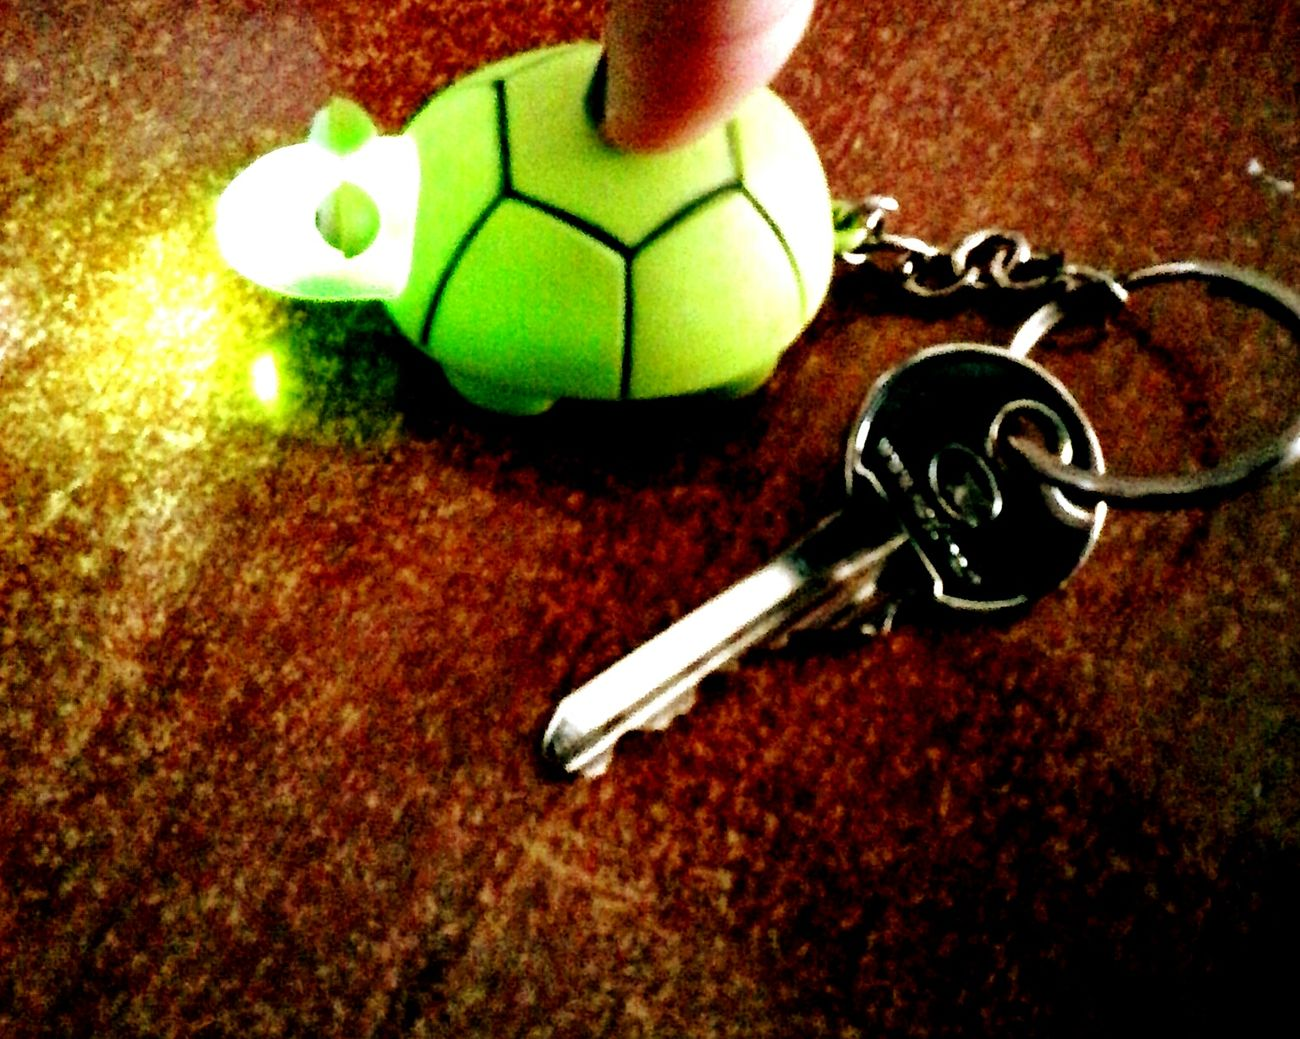 Keys Keychains  Turtles(: FUNNY ANIMALS Taking Photos Mobile_photographer BORED! Green Light